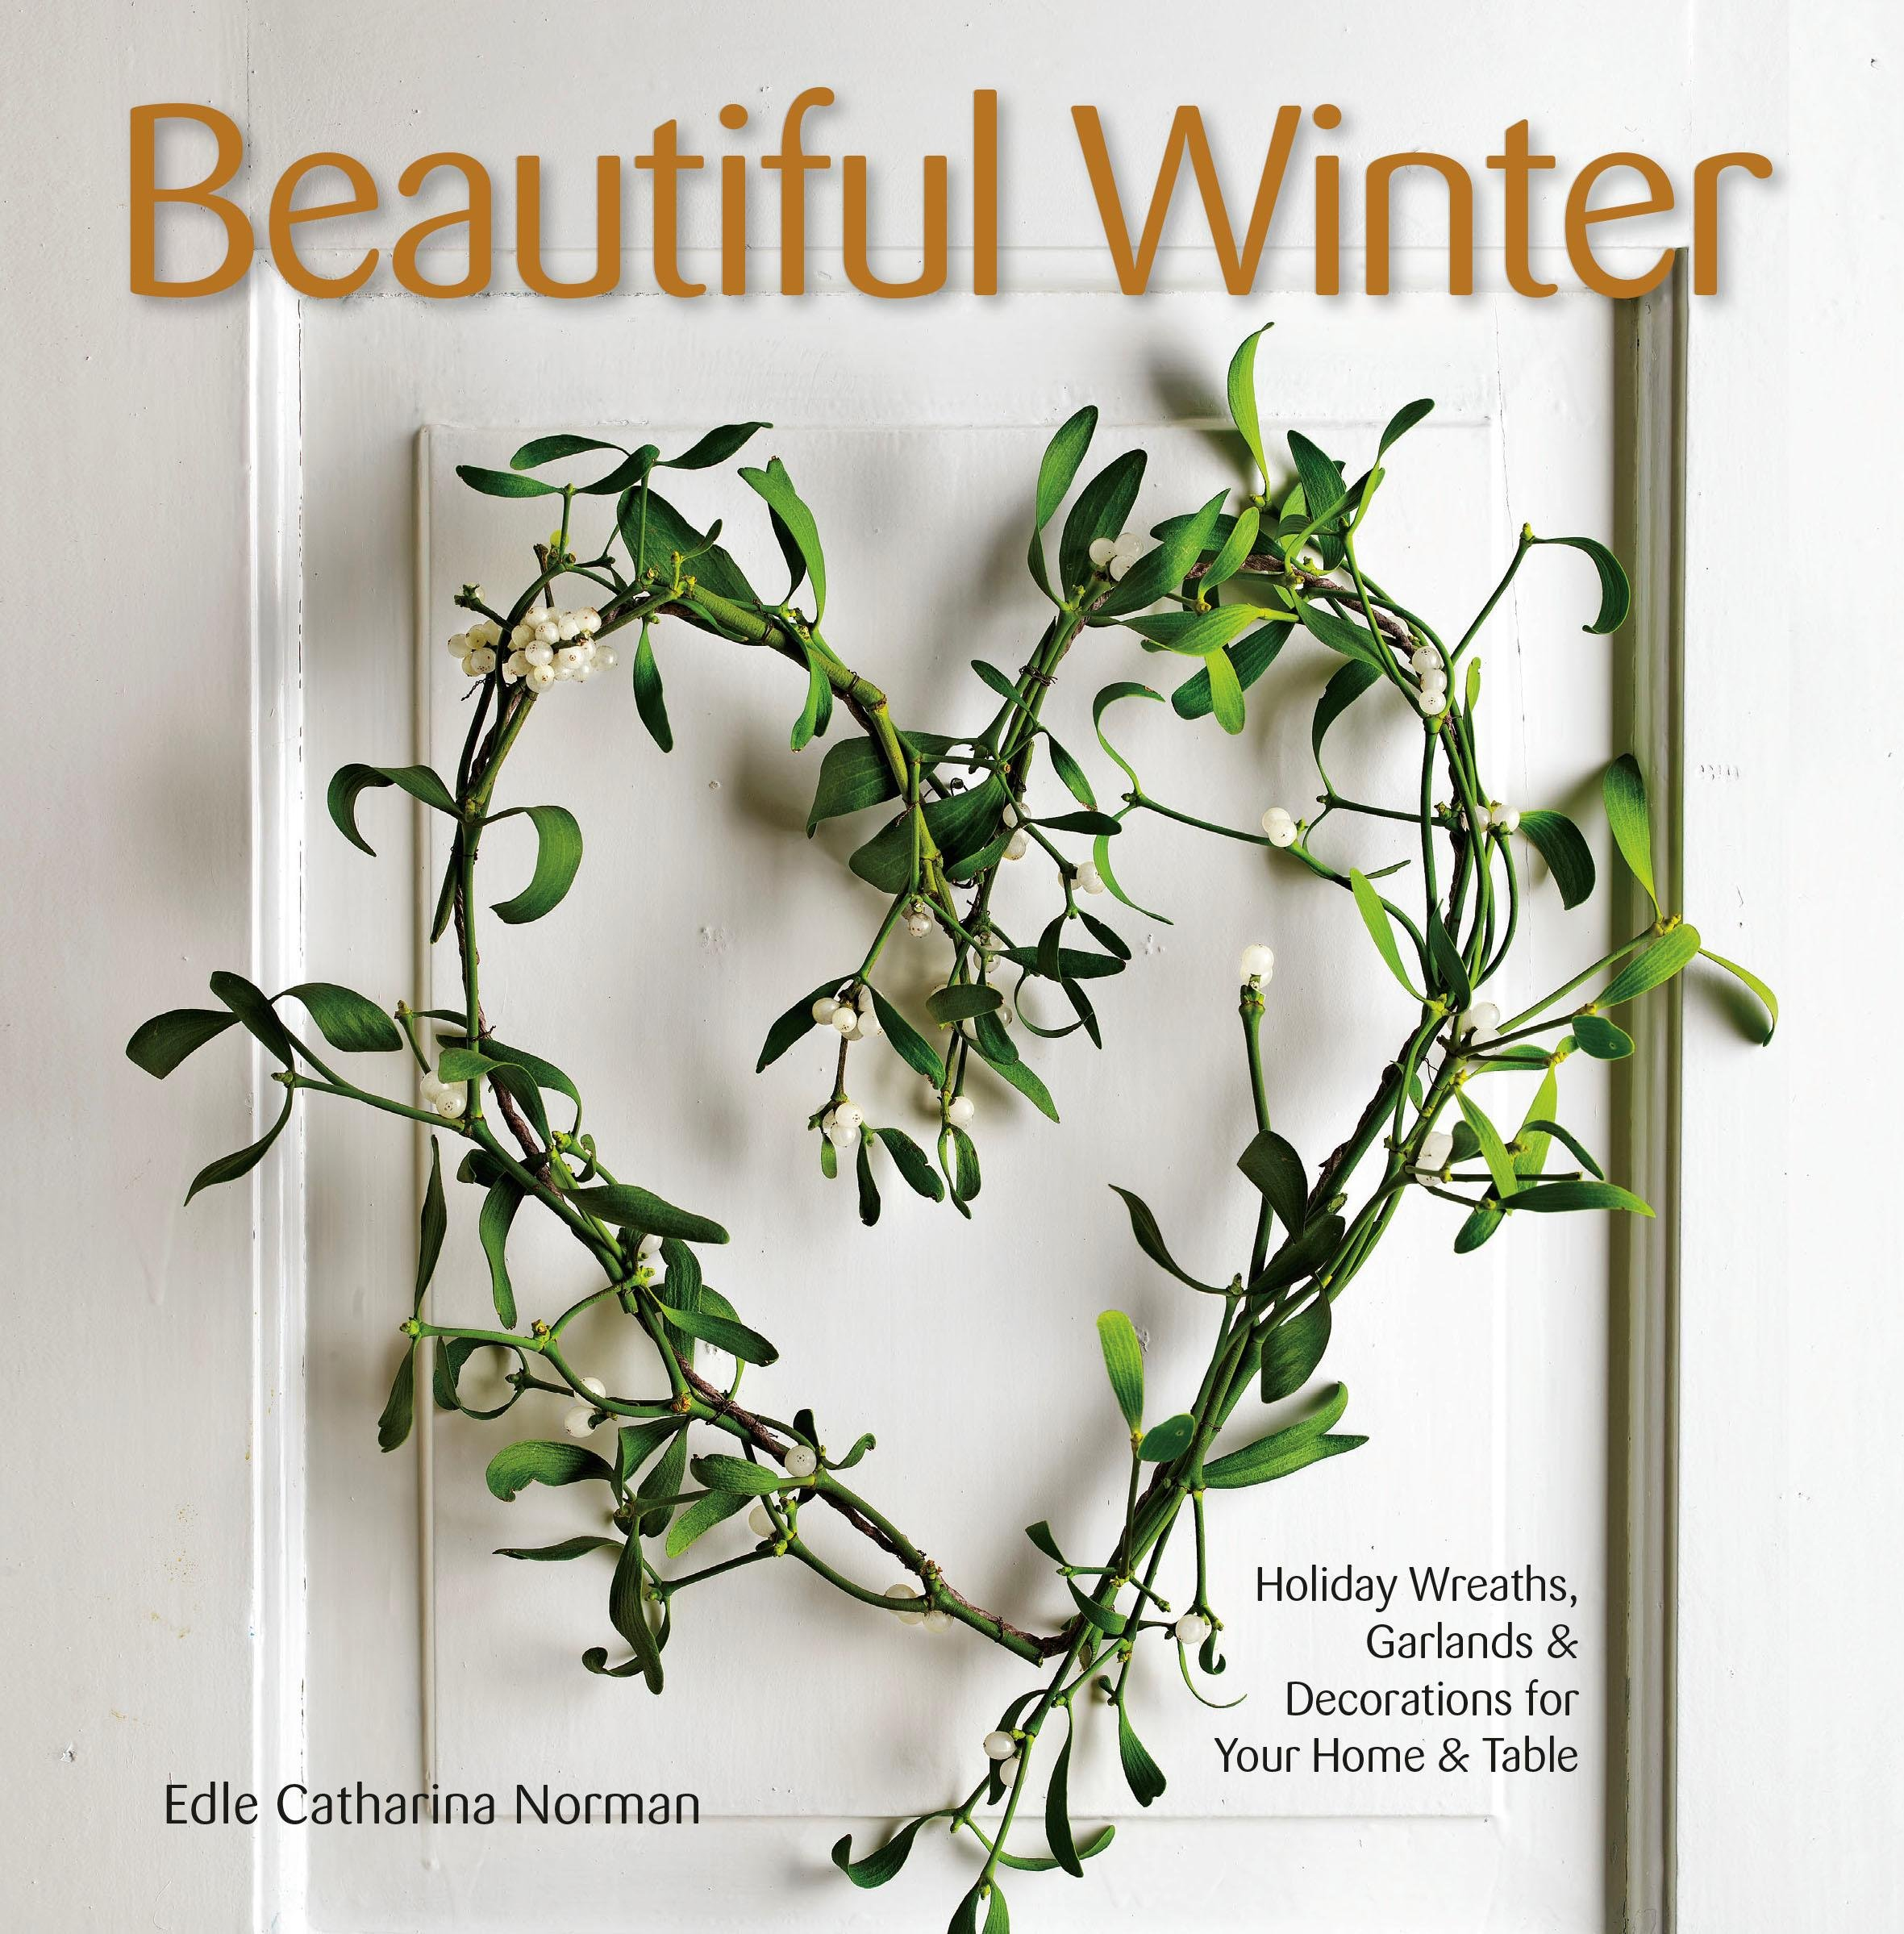 Beautiful Winter: Holiday Wreaths, Garlands, U0026 Decorations For Your Home U0026  Table: Edle Catharina Norman: 9781416208471: Amazon.com: Books